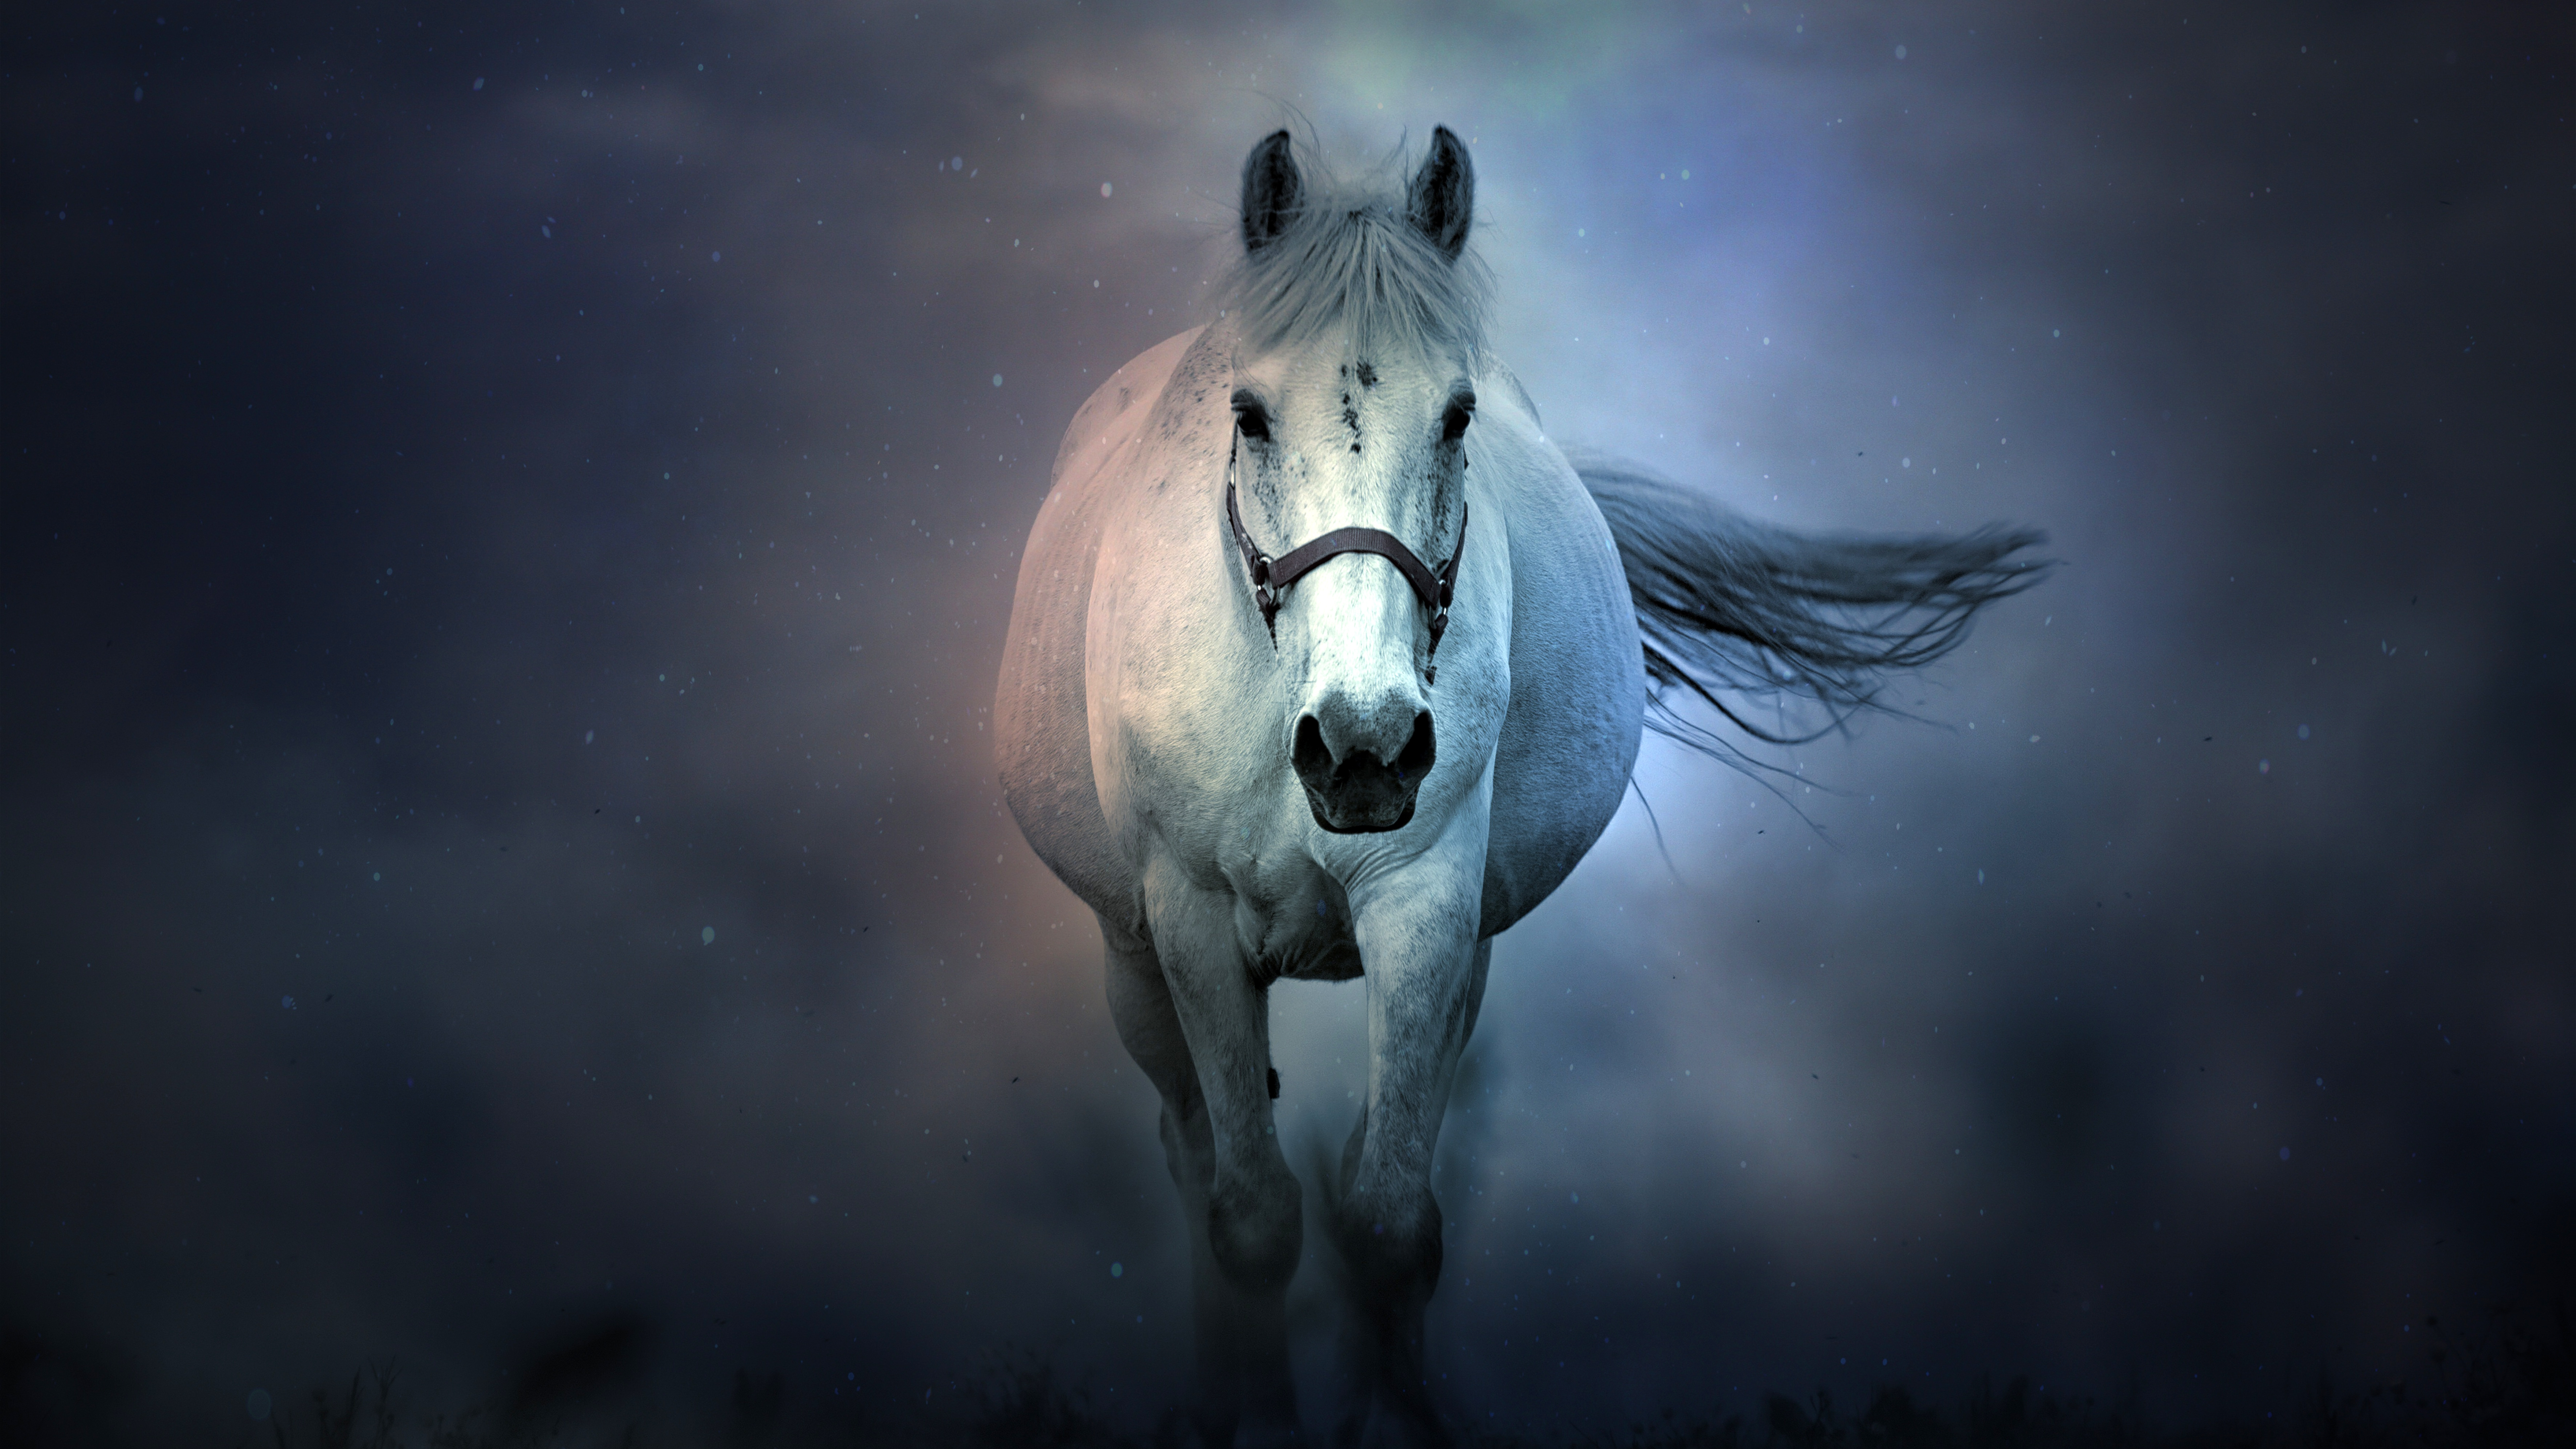 1 White Horse Hd Wallpapers Backgrounds